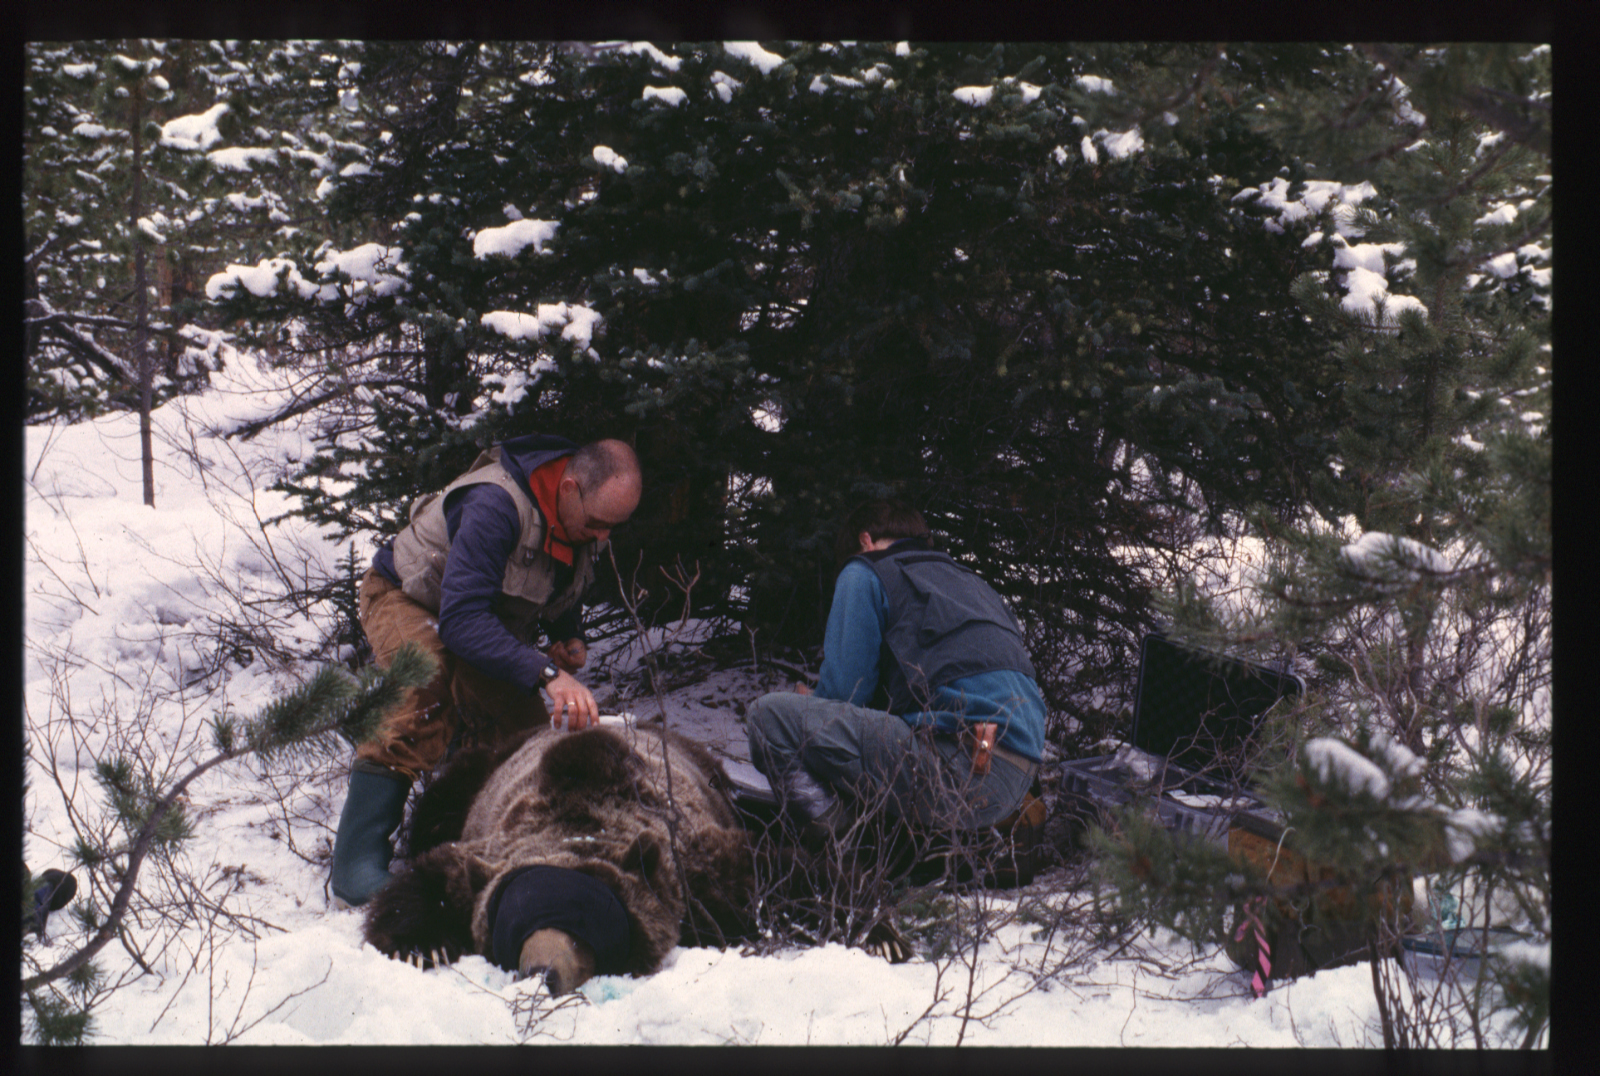 Two researchers fasten a radio collar to a tranquillized grizzly bear laying in the snow